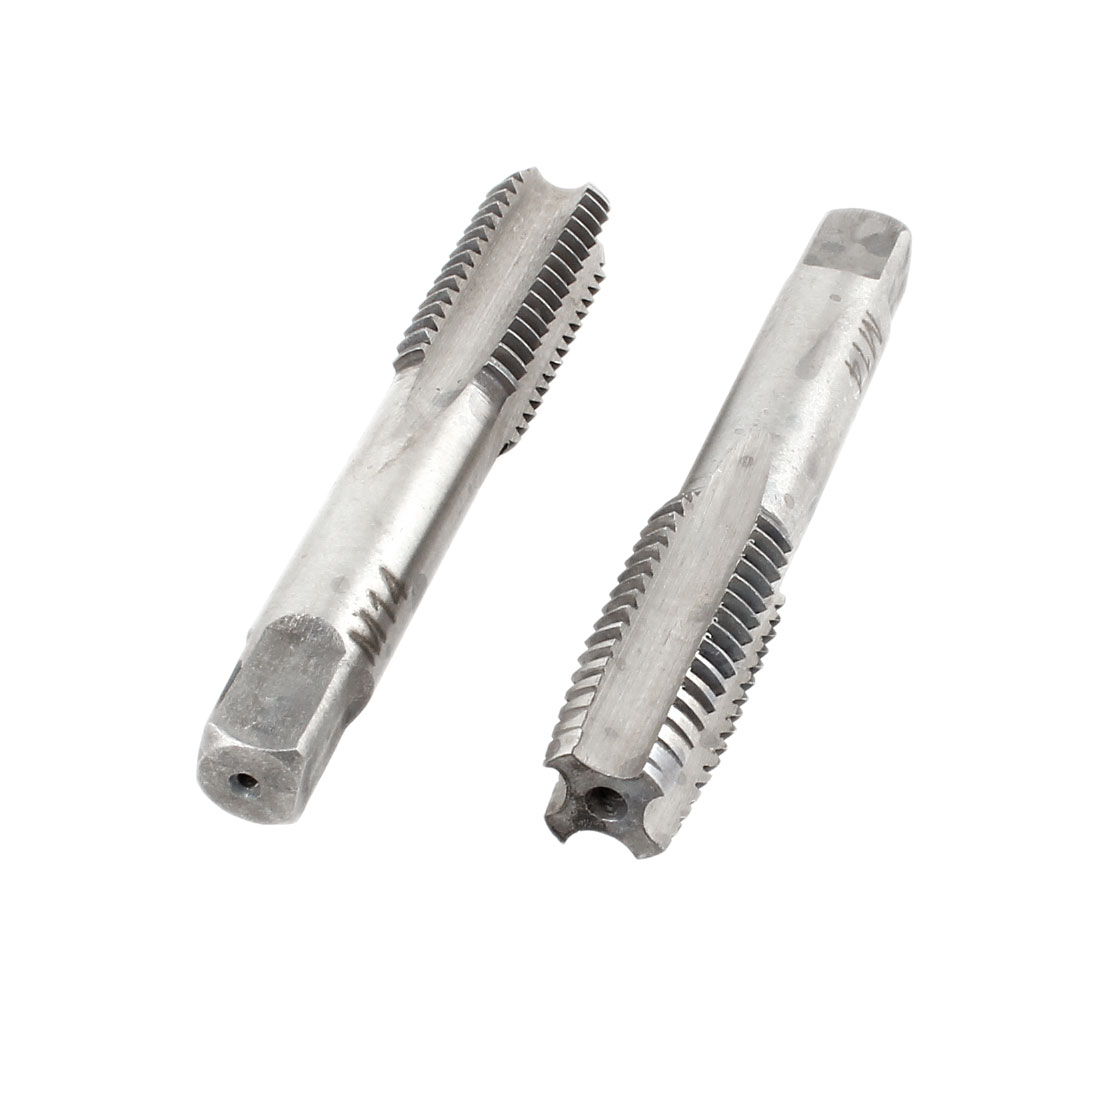 2 Pcs M14x32mm HSS 4 Flutes Hand Screw Thread Straight Metric Taps